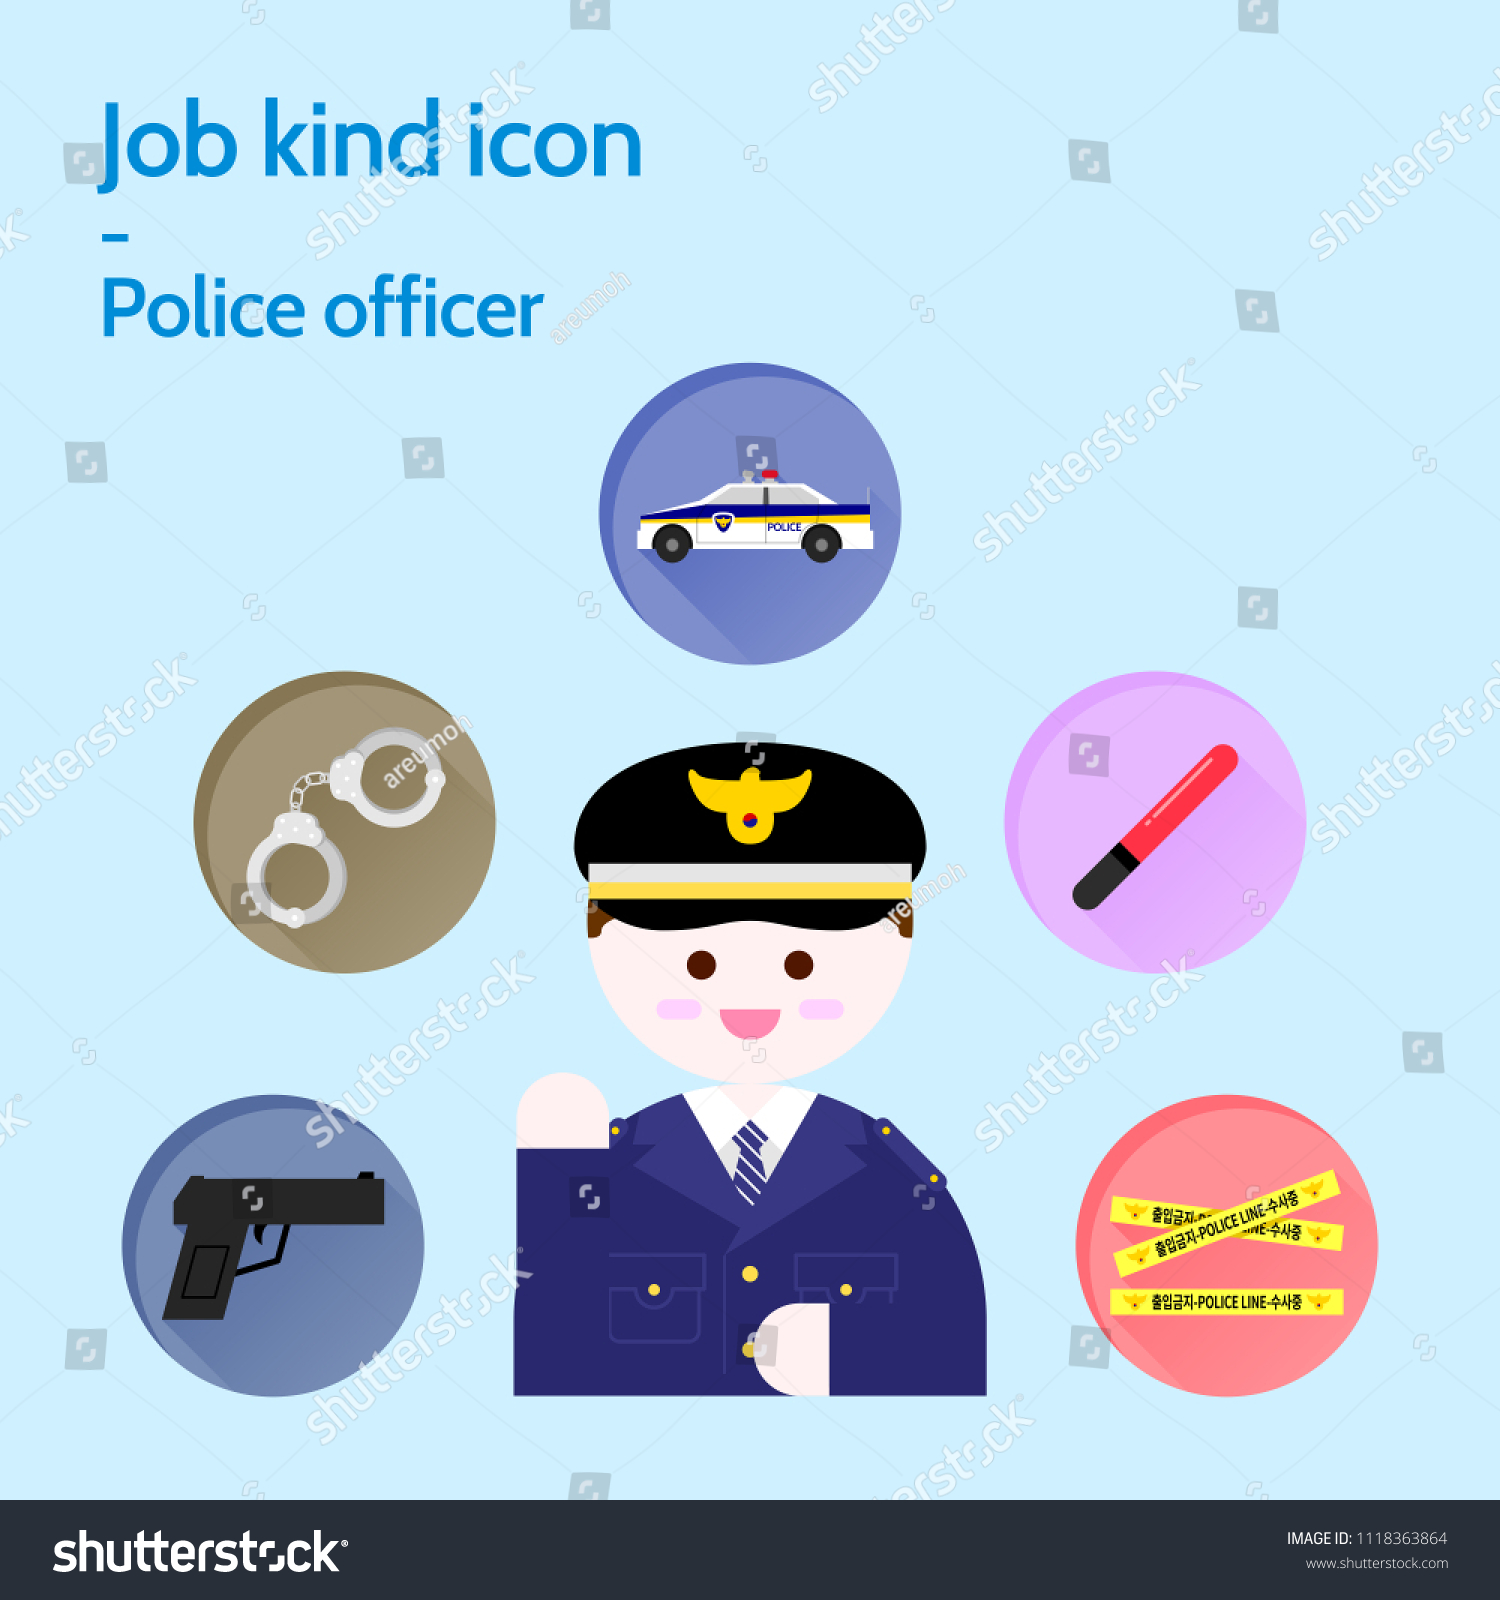 Icon Design Job Kind Police Officer Stock Vector (Royalty Free